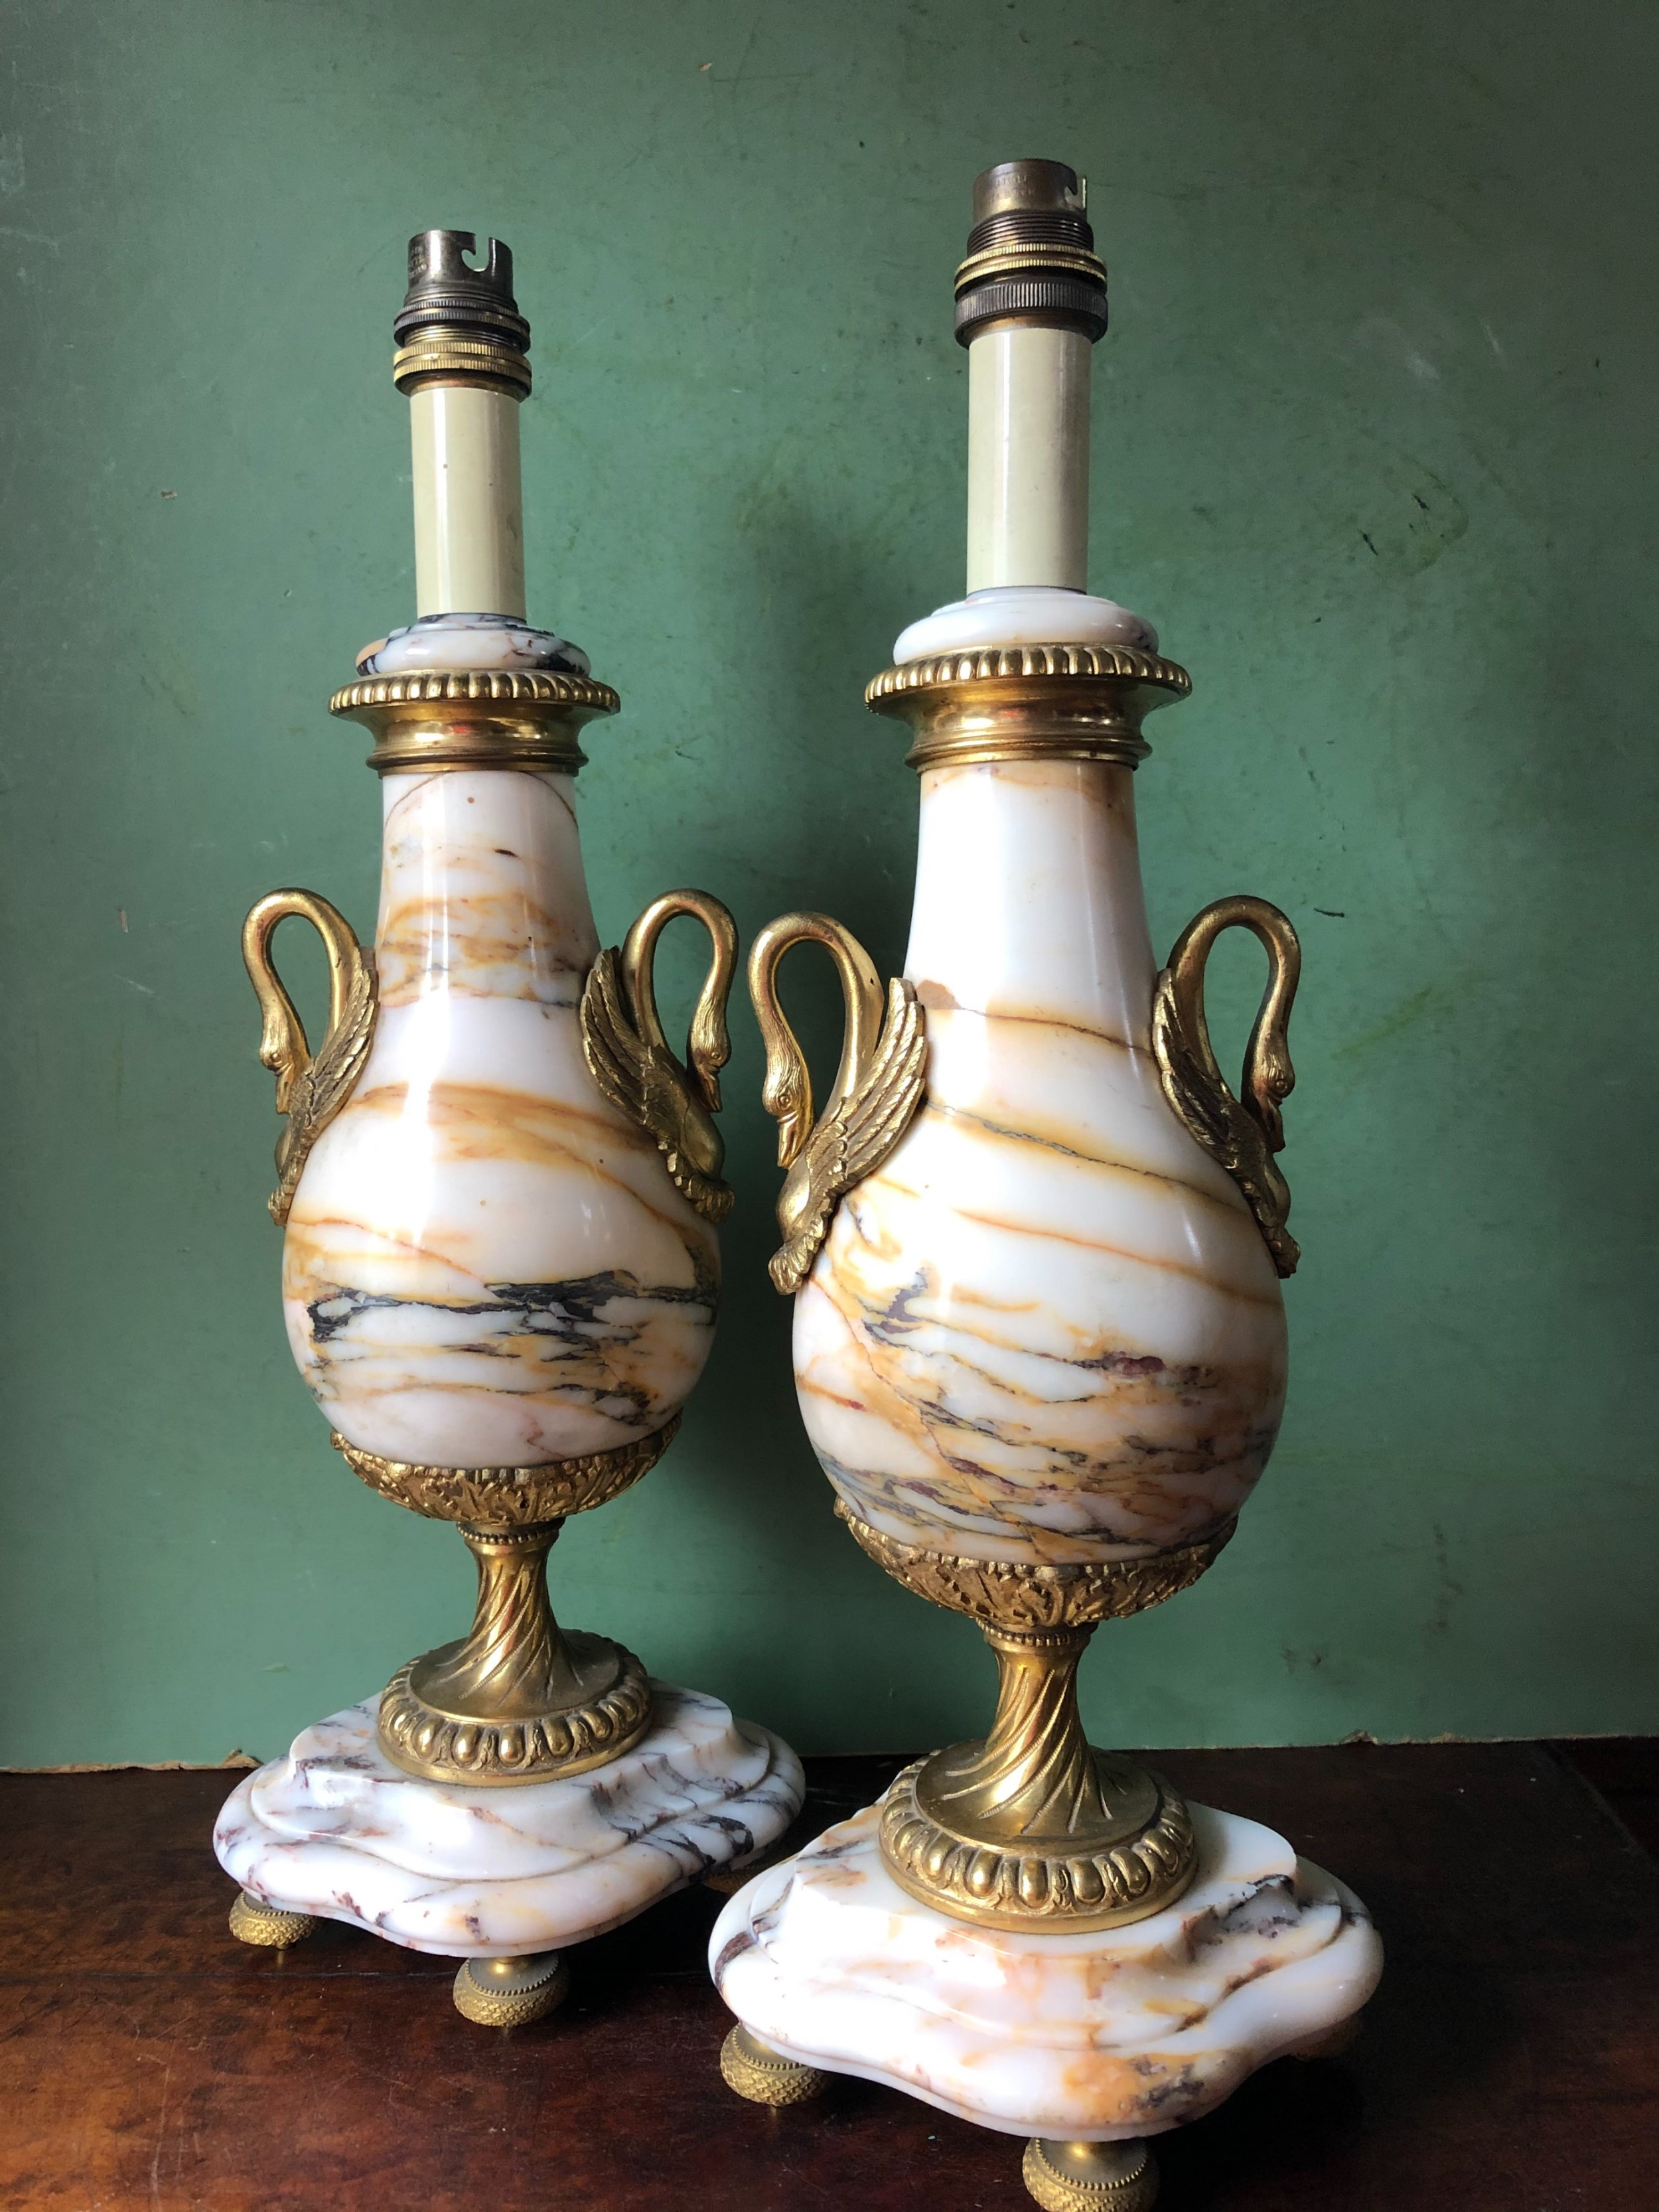 pair of early c20th french marble and ormolumounted lamp bases in the louis xvi style